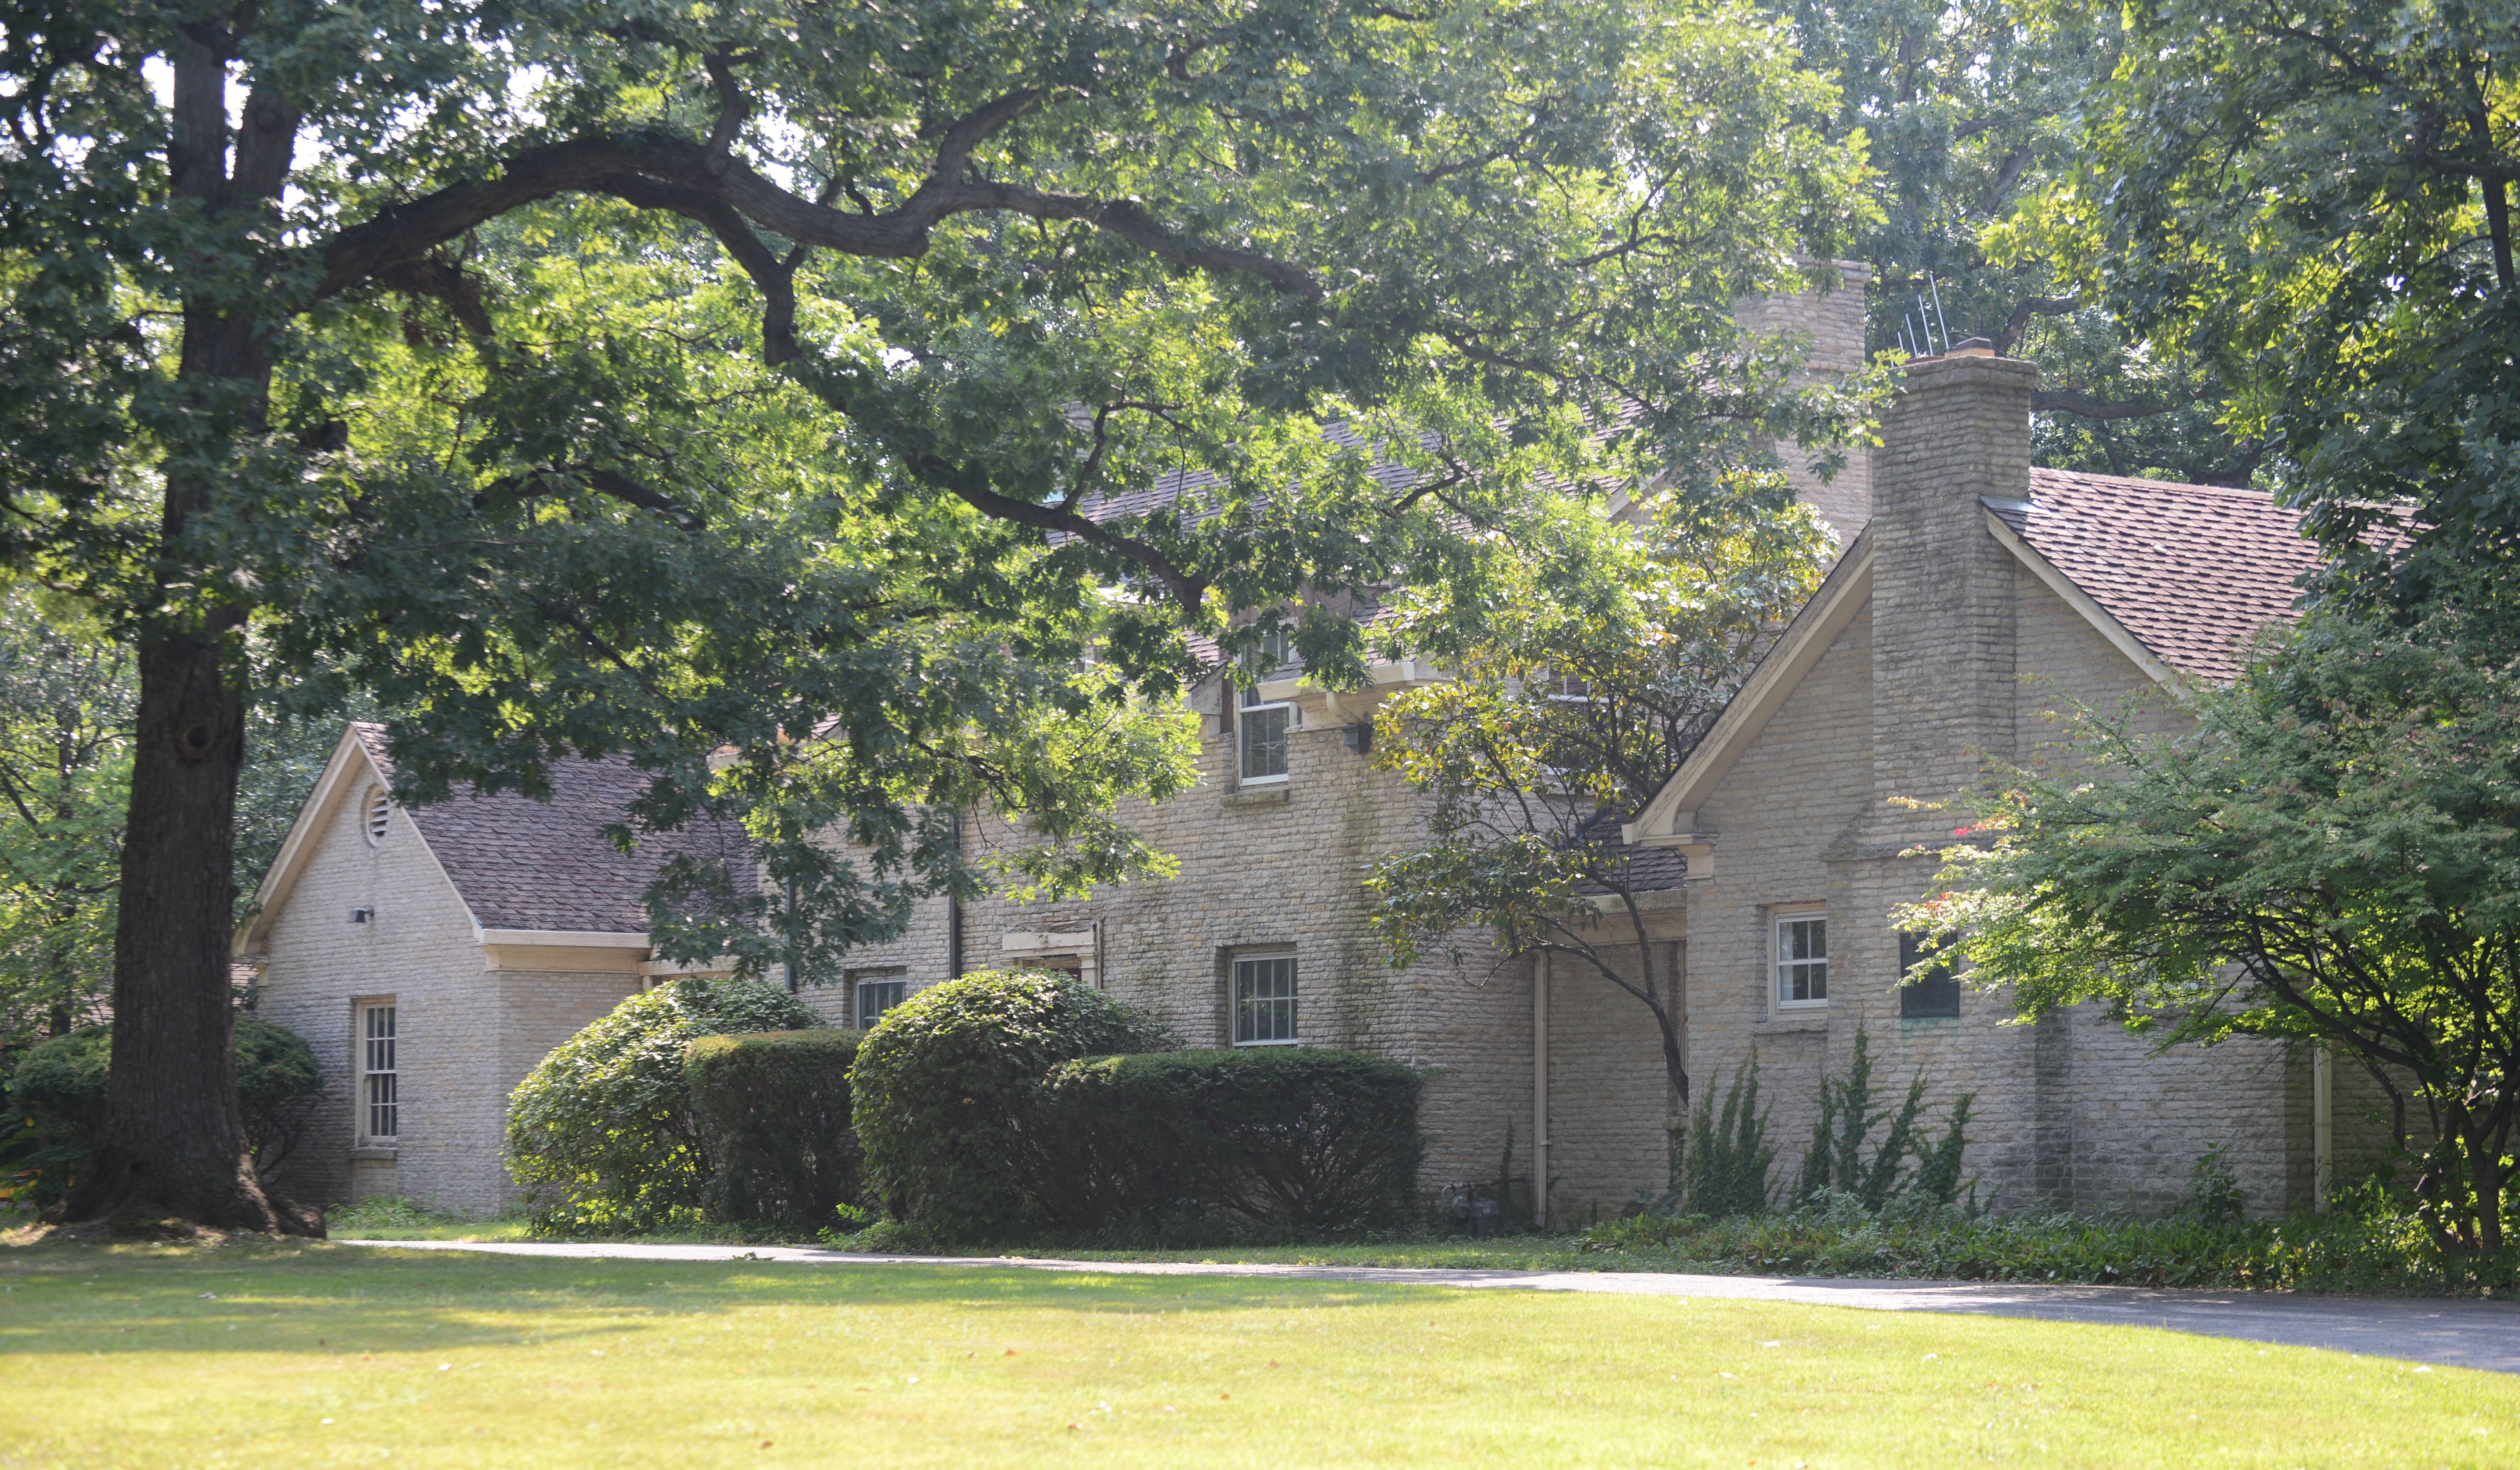 McKee House near Glen Ellyn can be saved — but only through a grass-roots effort, says DuPage County Forest Preserve President Joseph Cantore.